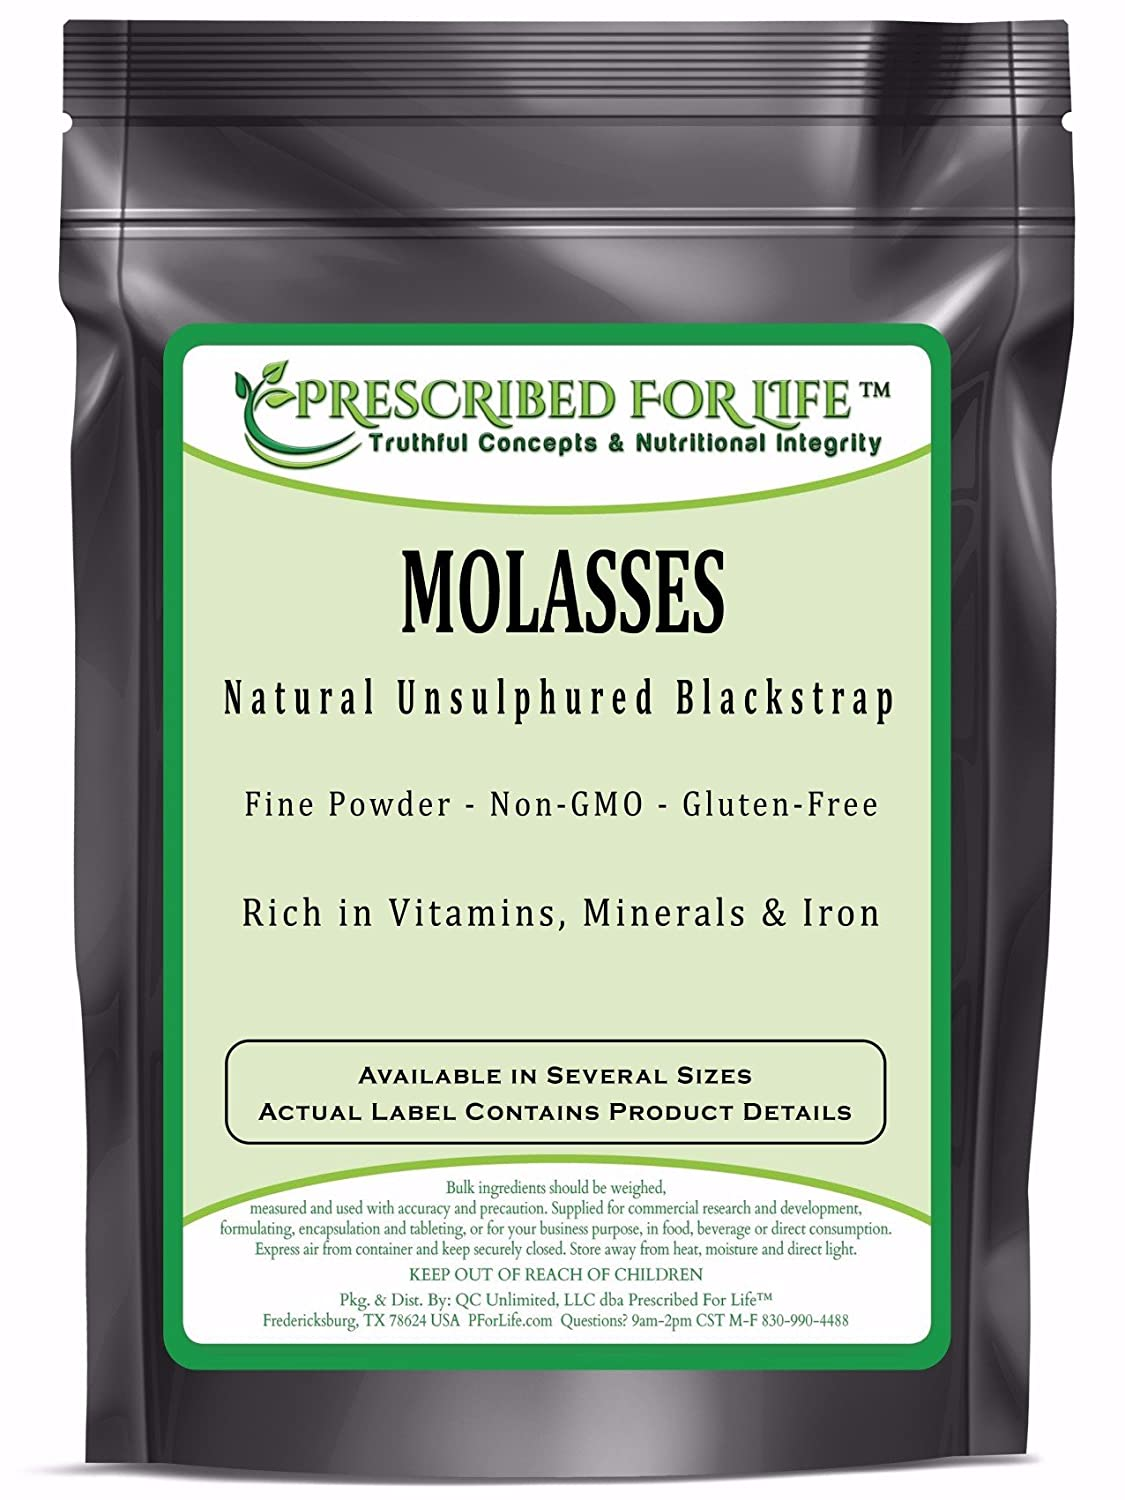 Prescribed for Life Molasses - Natural Non-GMO Unsulphured Blackstrap Molasses Powder, 1 kg